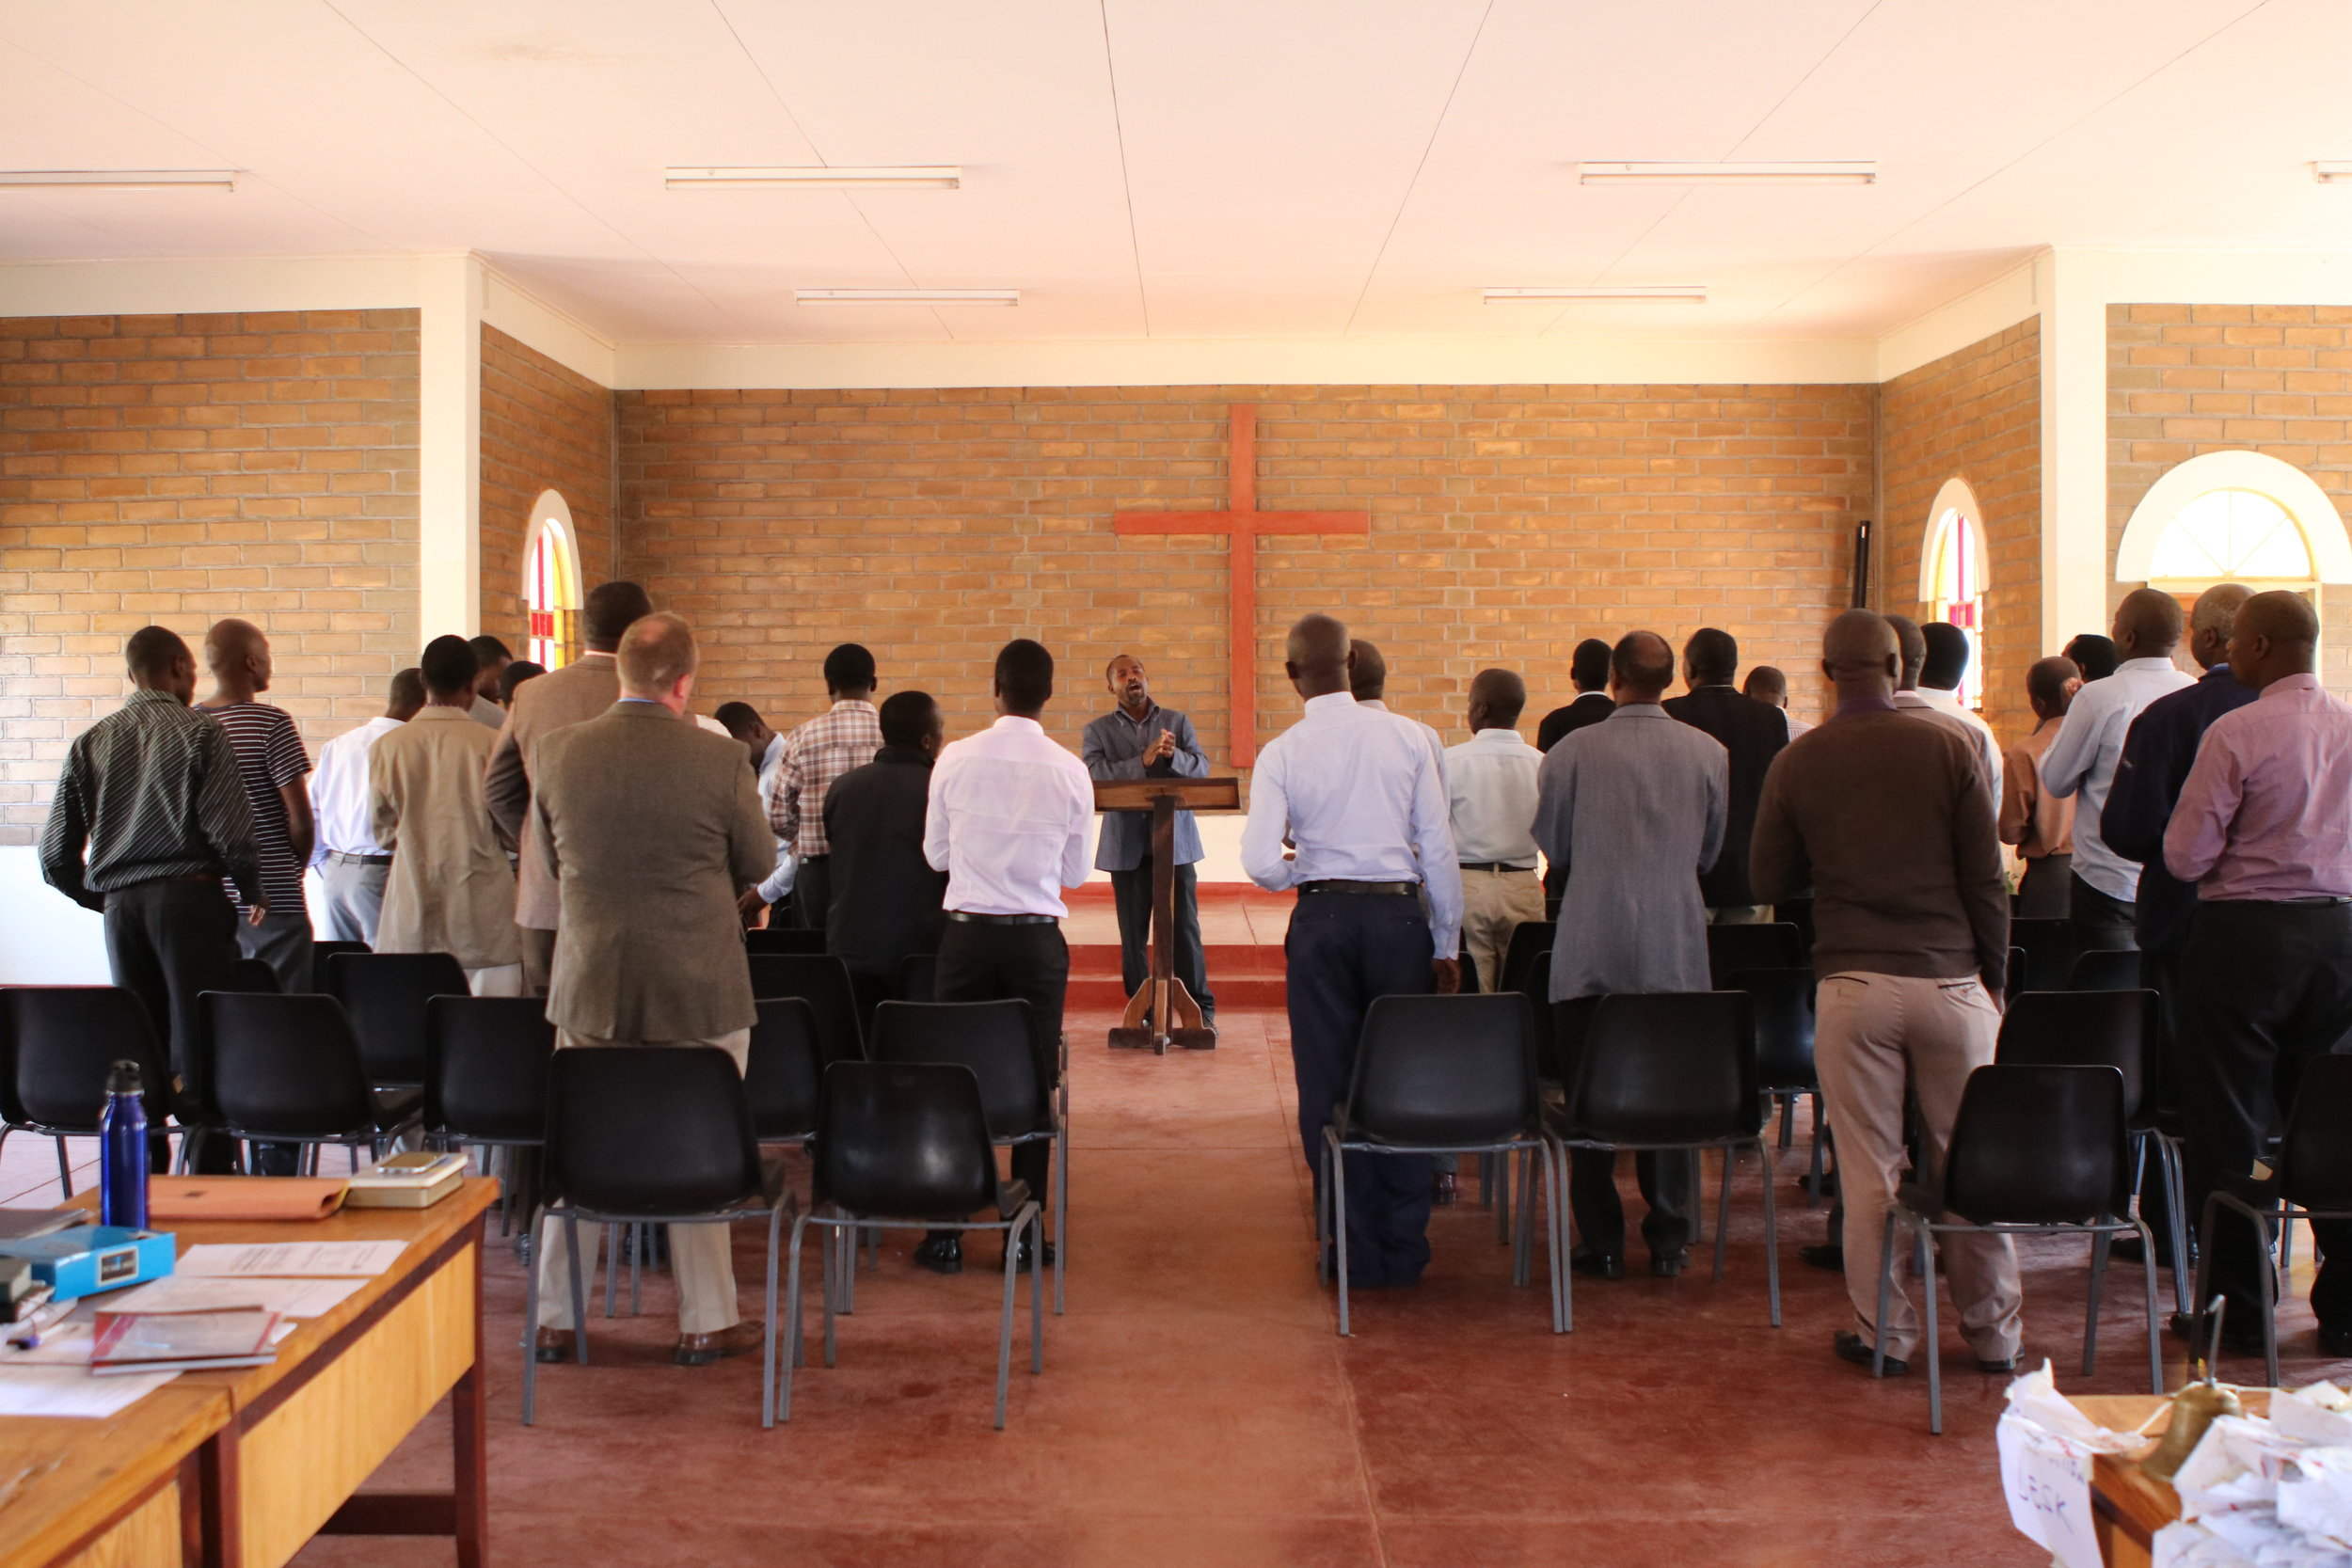 Student Daniel Mkweteza leads a time of singing and worship during chapel.